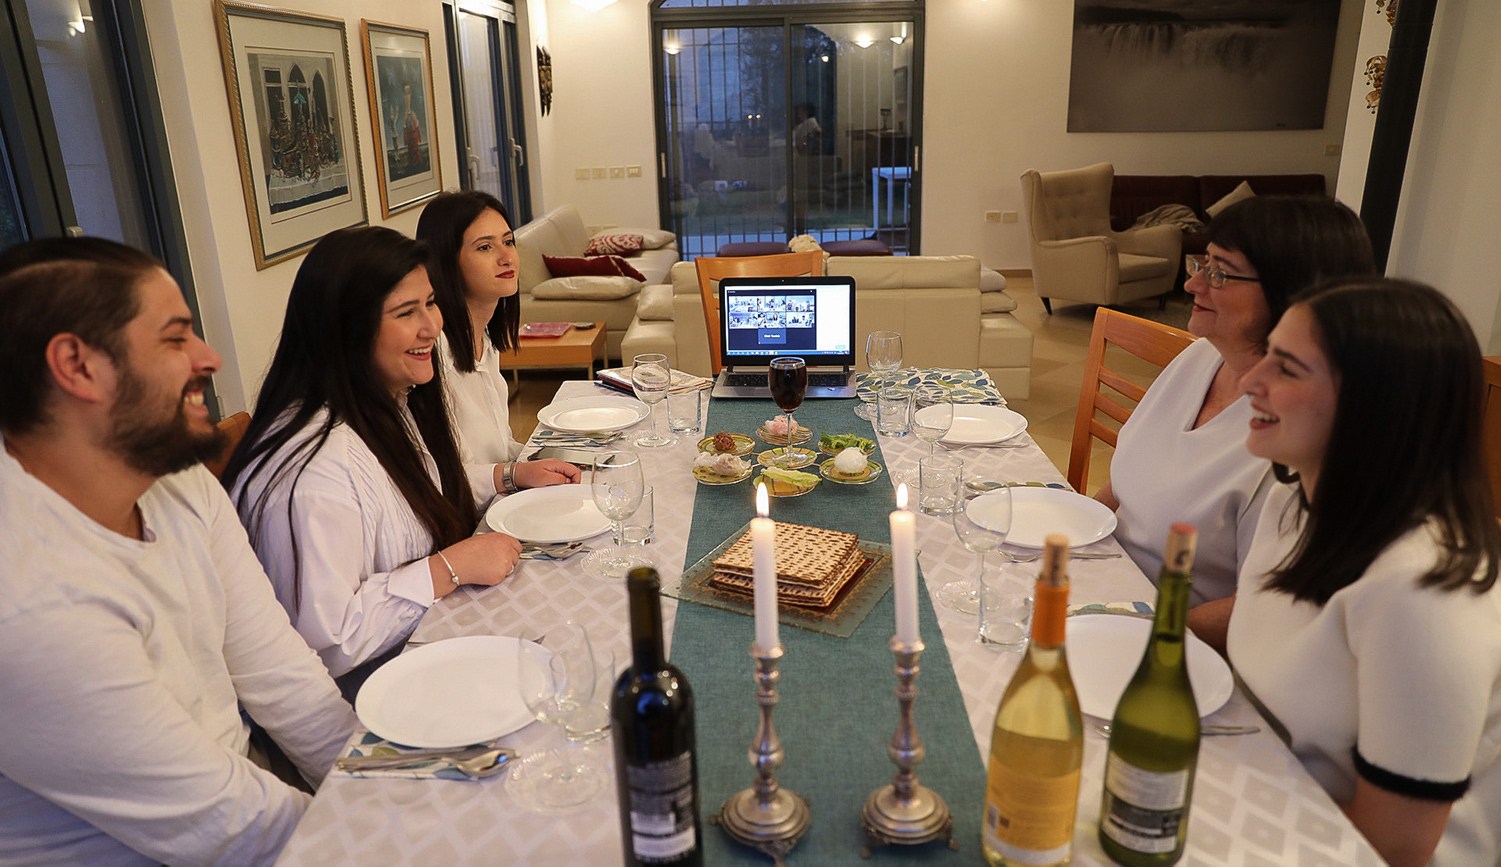 An Israeli family at an online seder on April 8, 2020. Nati Shohat/Flash90.